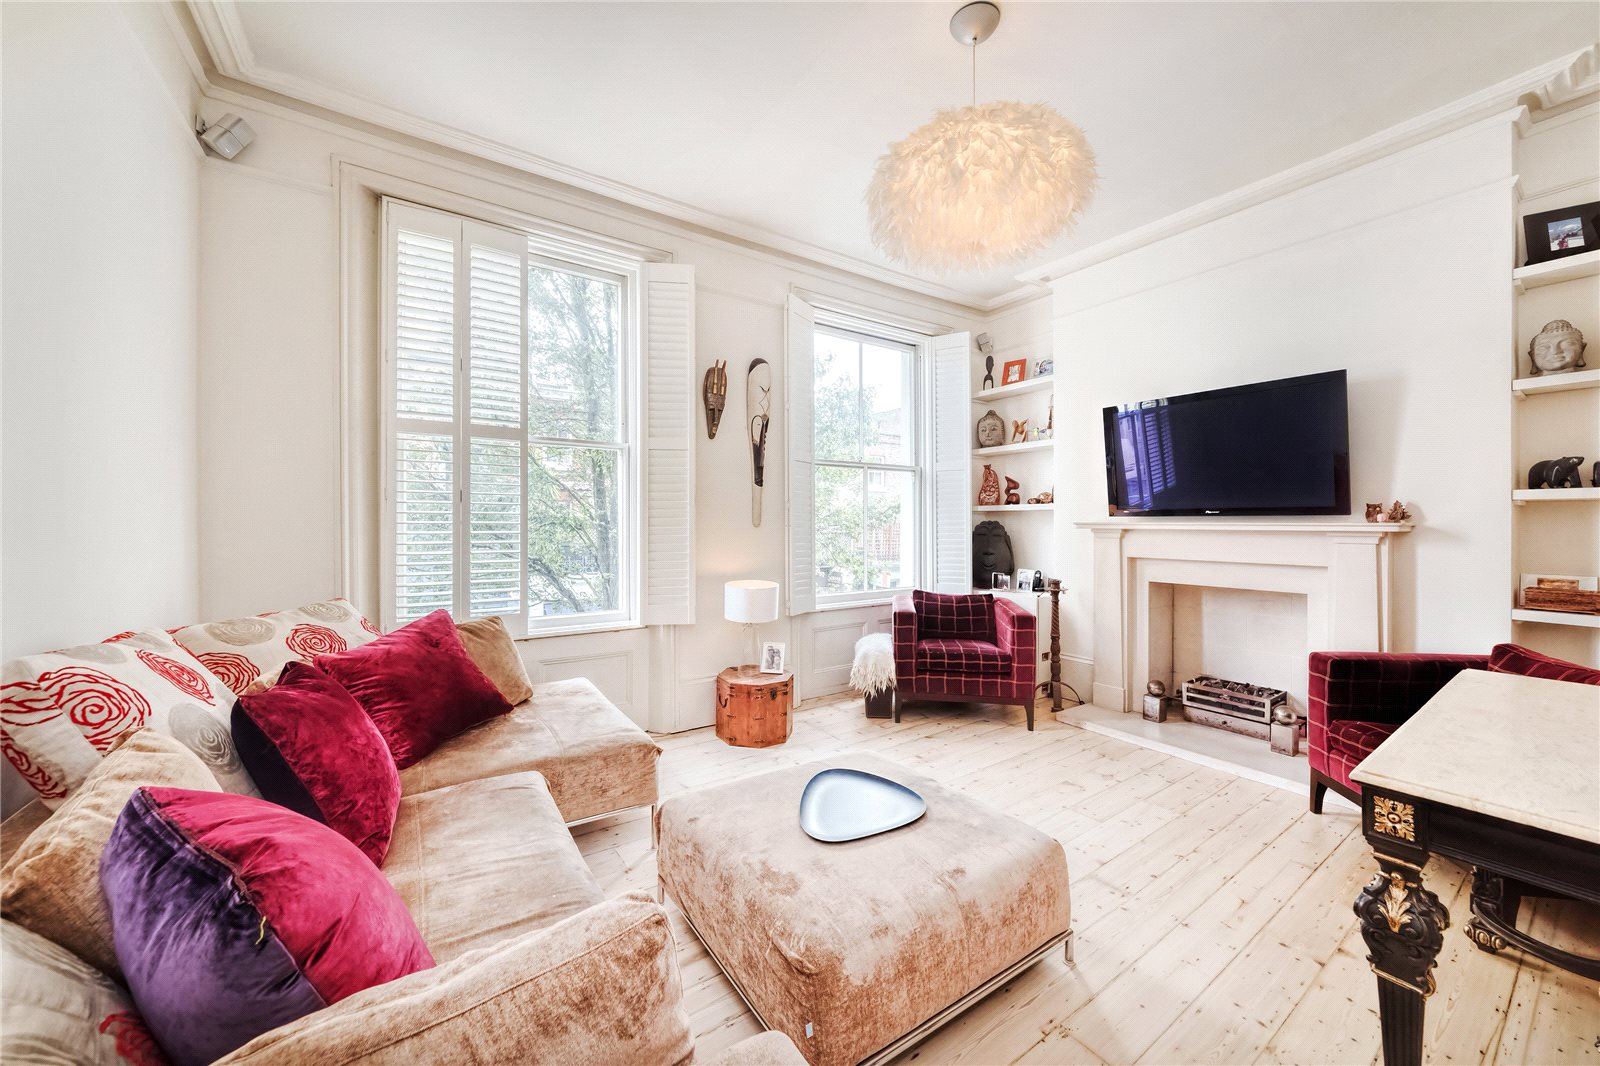 Apartments / Residences for Sale at Park Walk, Chelsea, London, SW10 Chelsea, London, England